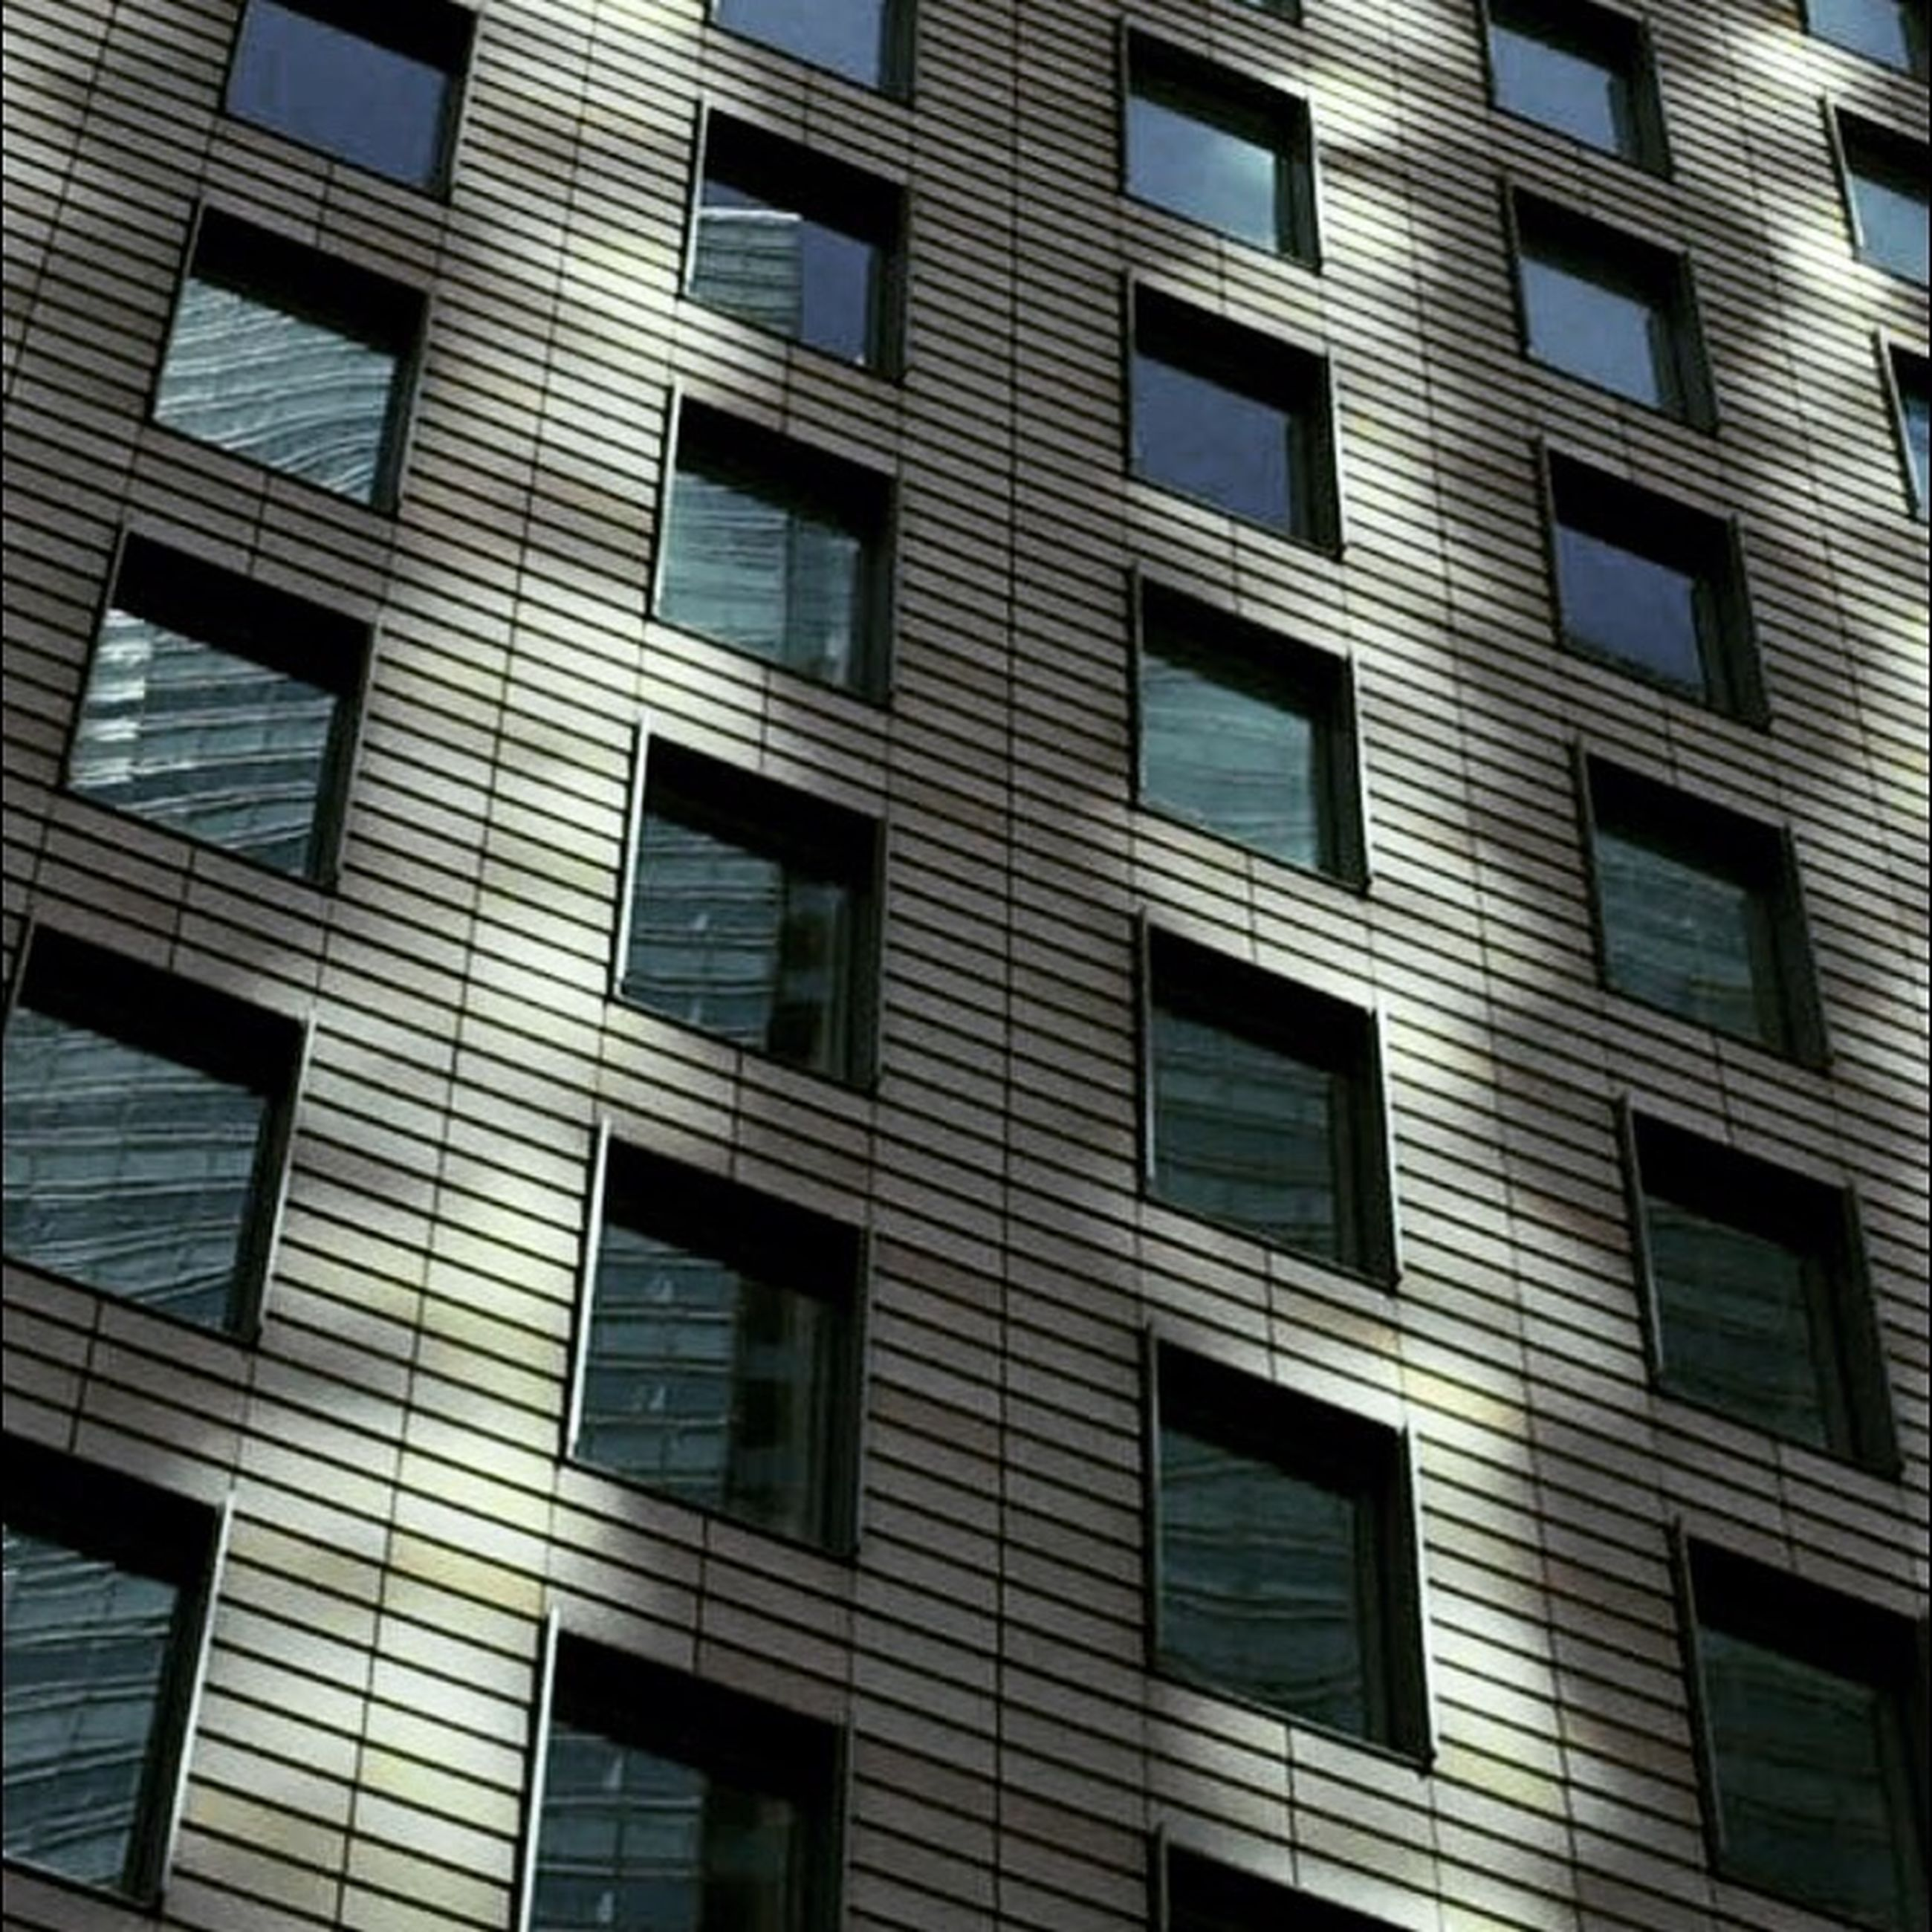 architecture, building exterior, built structure, window, full frame, low angle view, building, residential building, backgrounds, residential structure, apartment, city, balcony, repetition, day, in a row, glass - material, no people, outdoors, facade